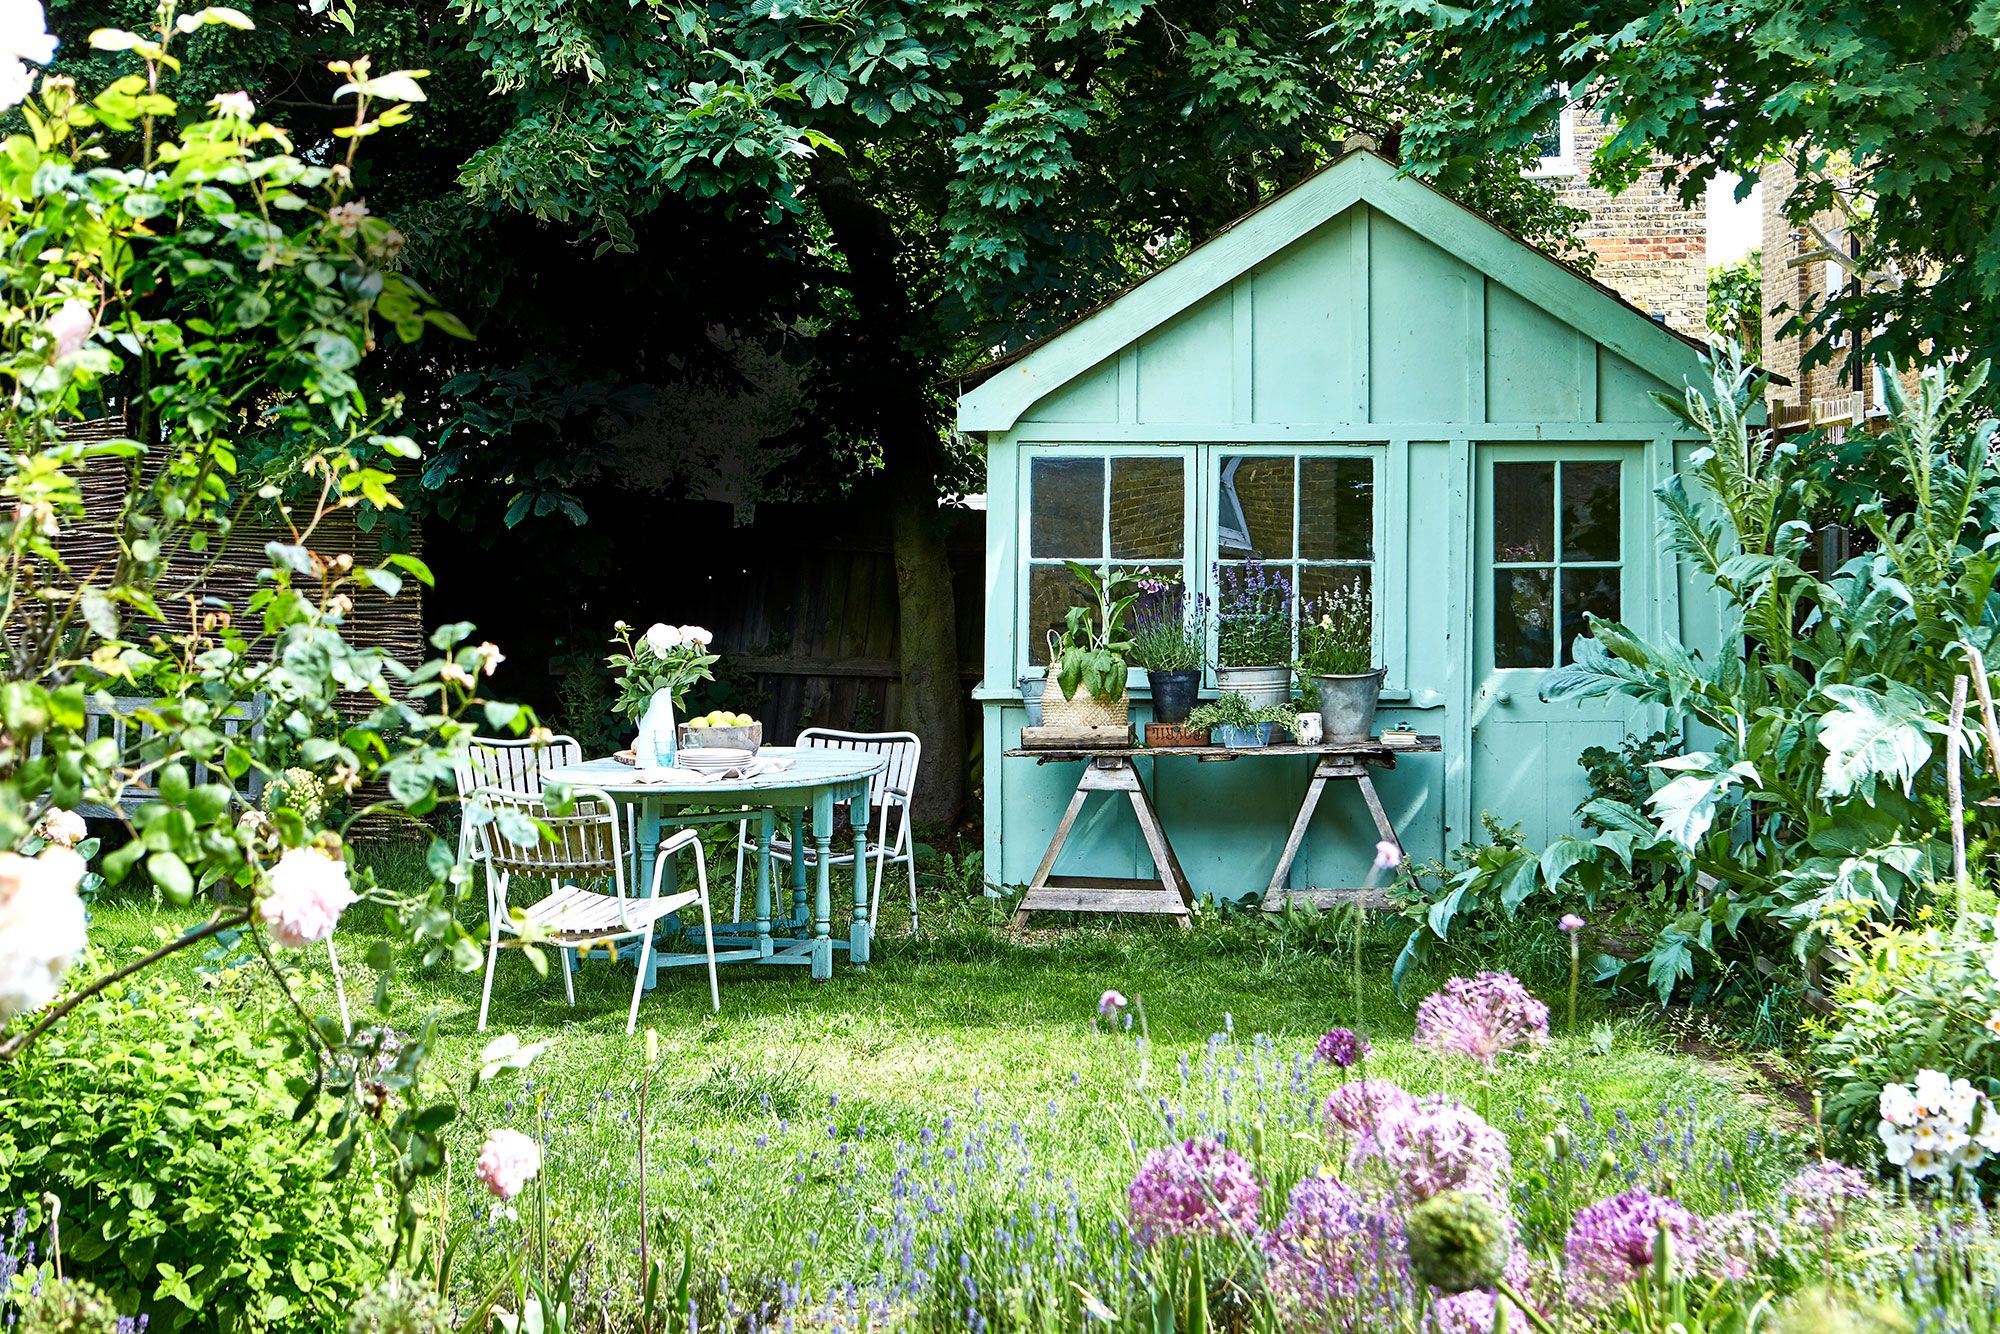 9 Rustic And Vintage Garden Styling Tips